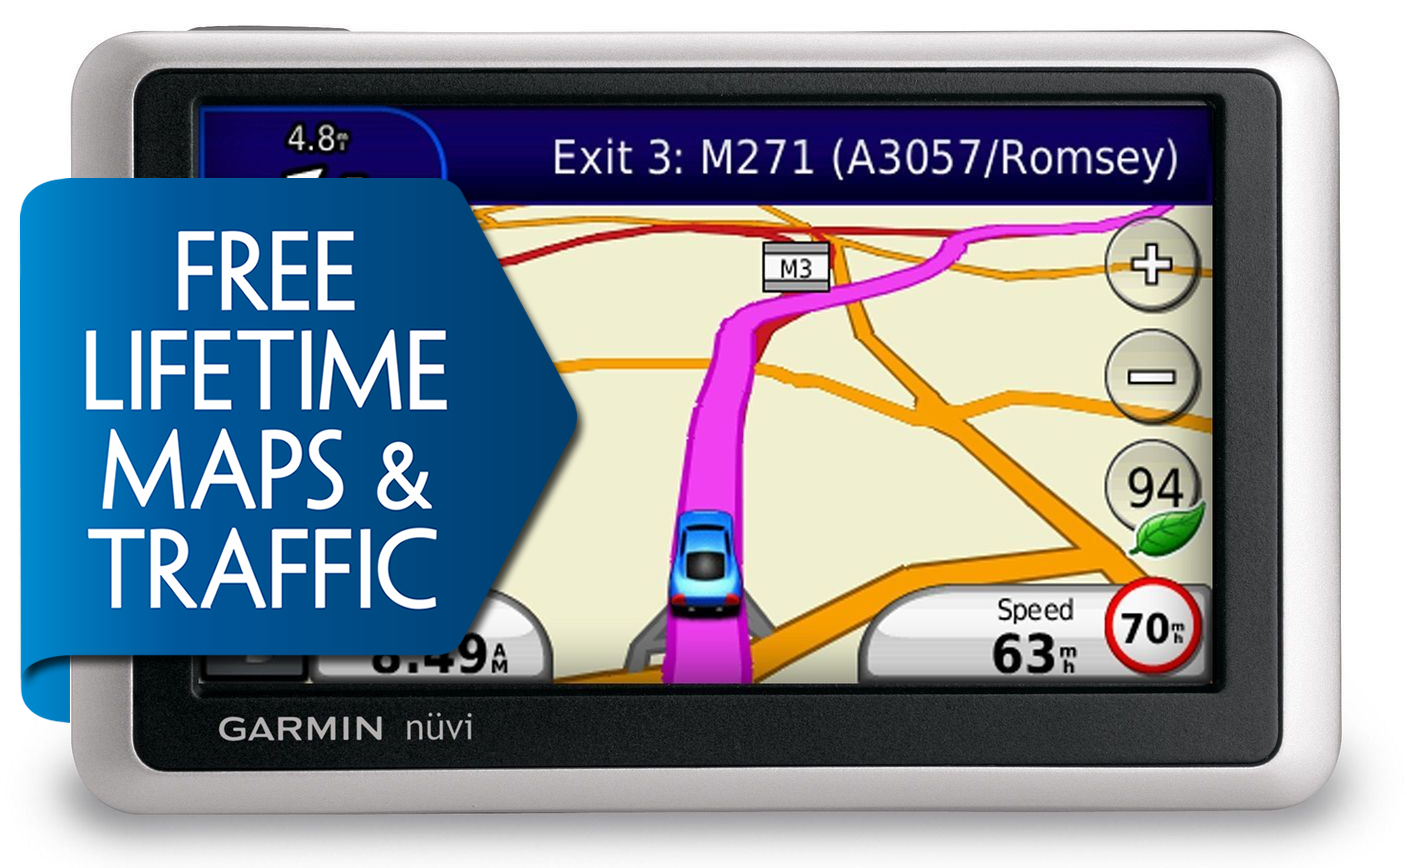 Garmin Nuvi 1340lmt Gps Satnav Free Lifetime Europe Map